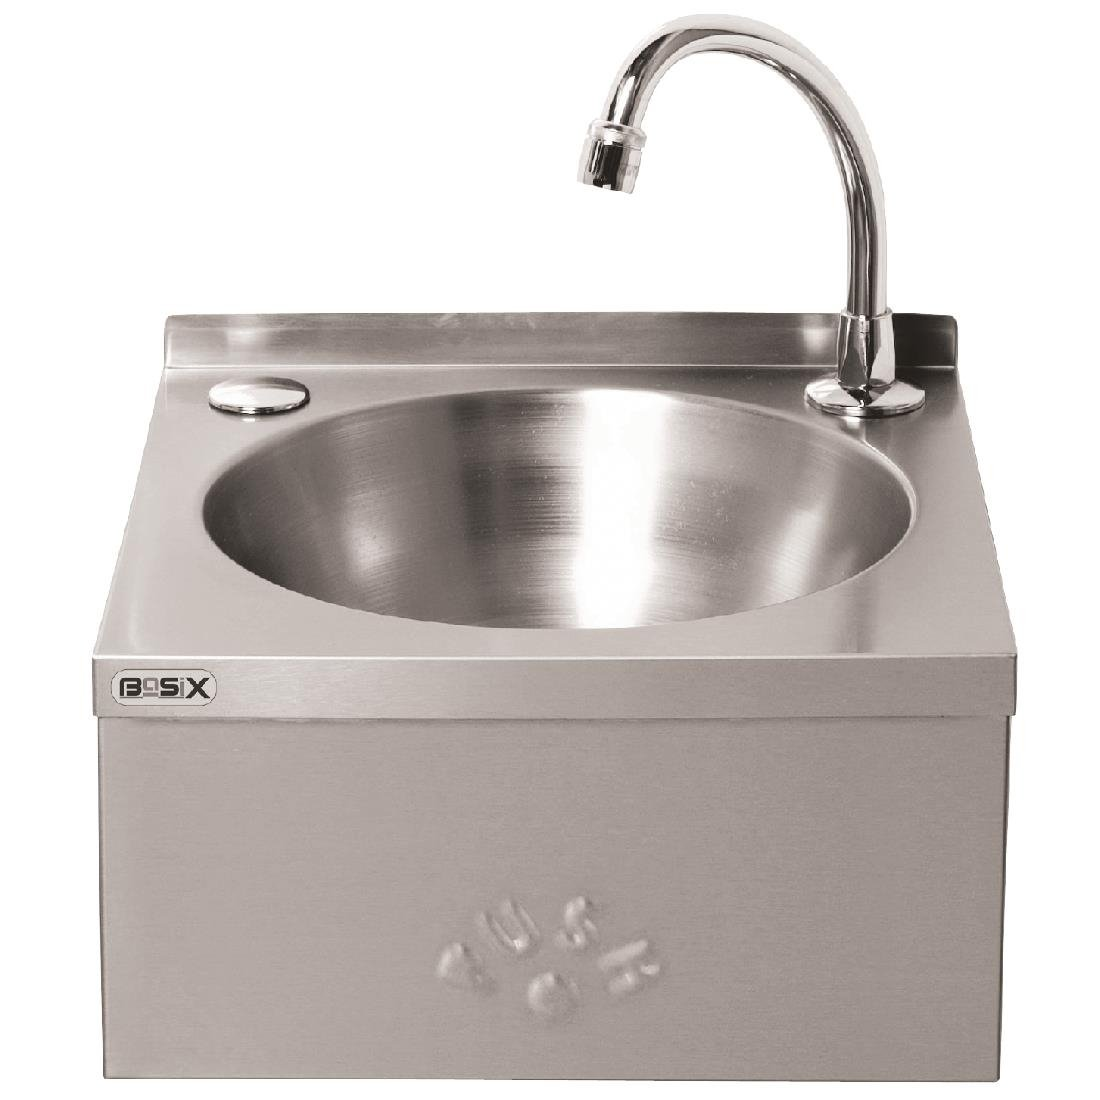 Elegant ... Basix Stainless Steel Knee Operated Hand Wash Basin